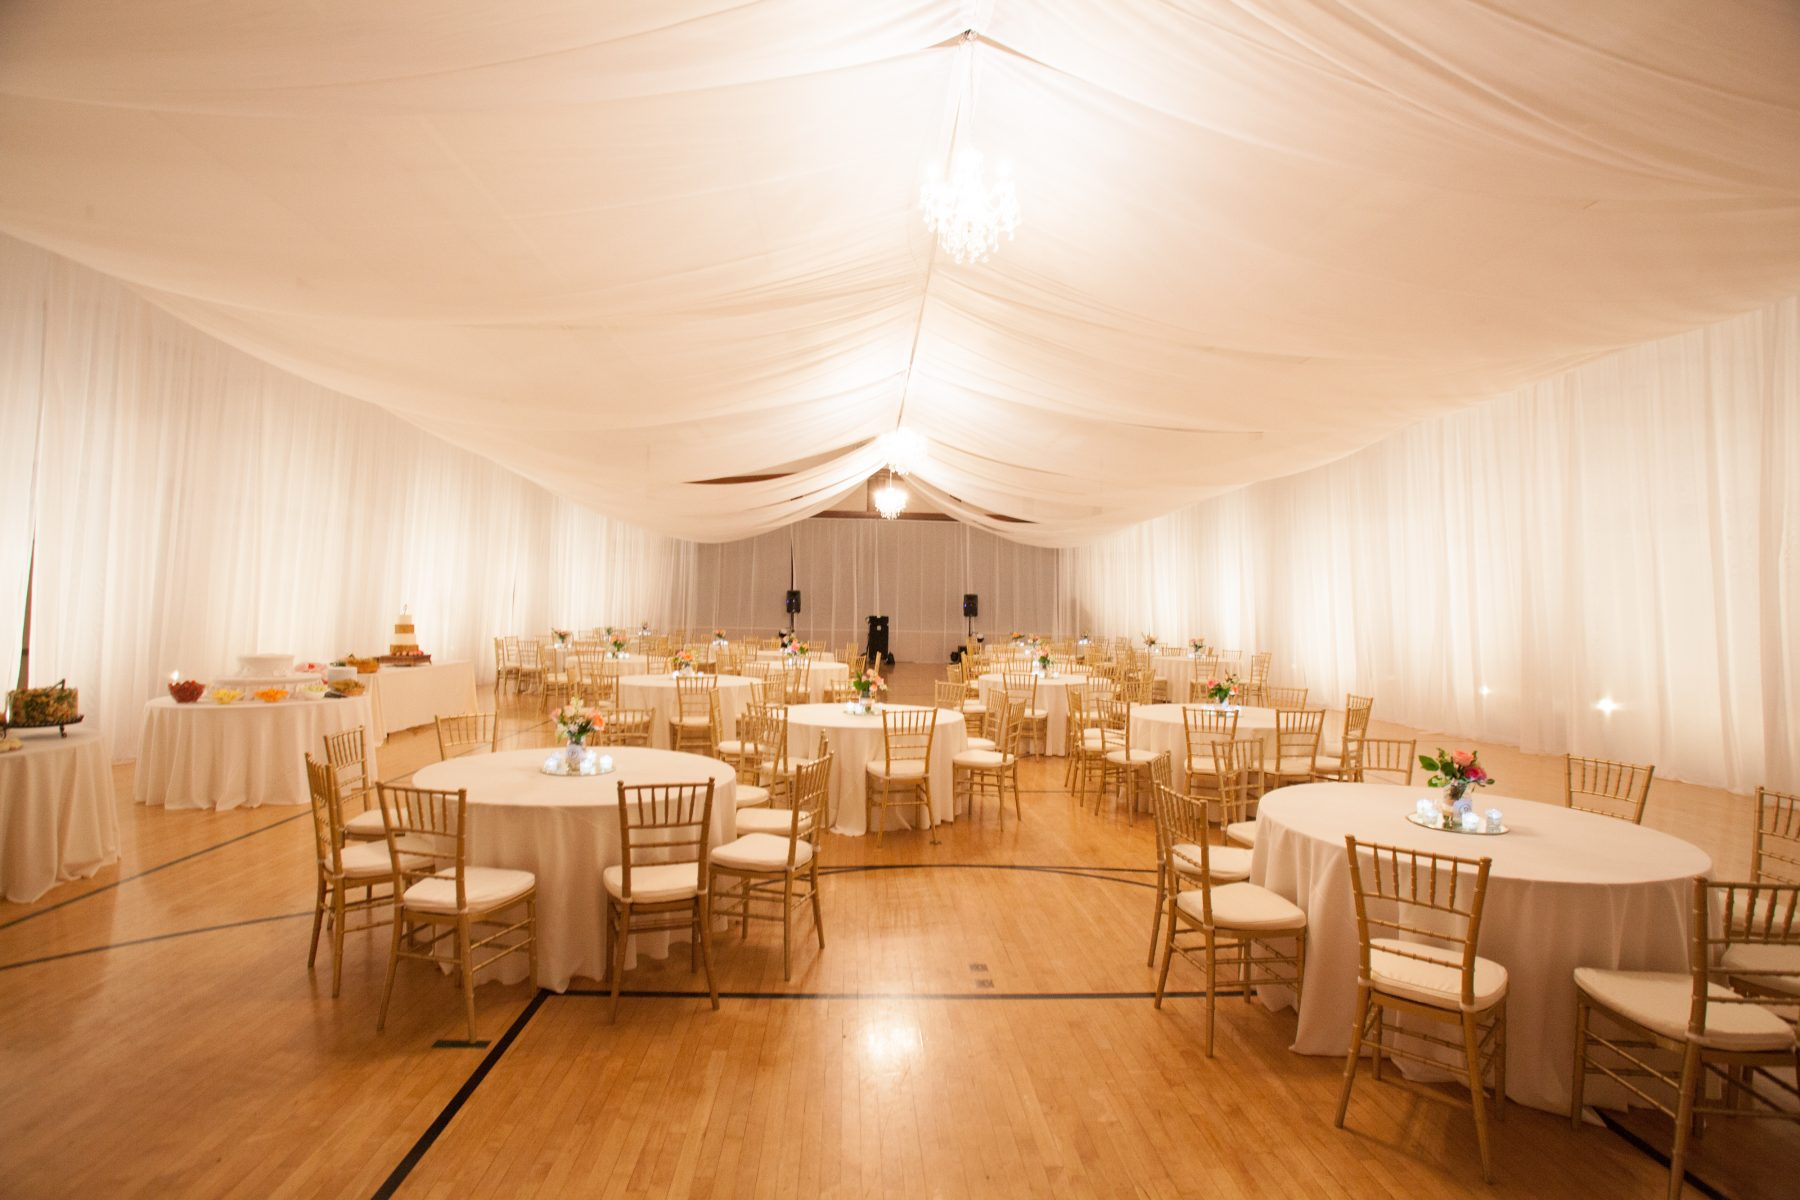 Sacramento draping sacramento wedding drapes ceiling draping lighting draping packages starting as low as 695 discounts available when combined with dj or photo booth services junglespirit Images